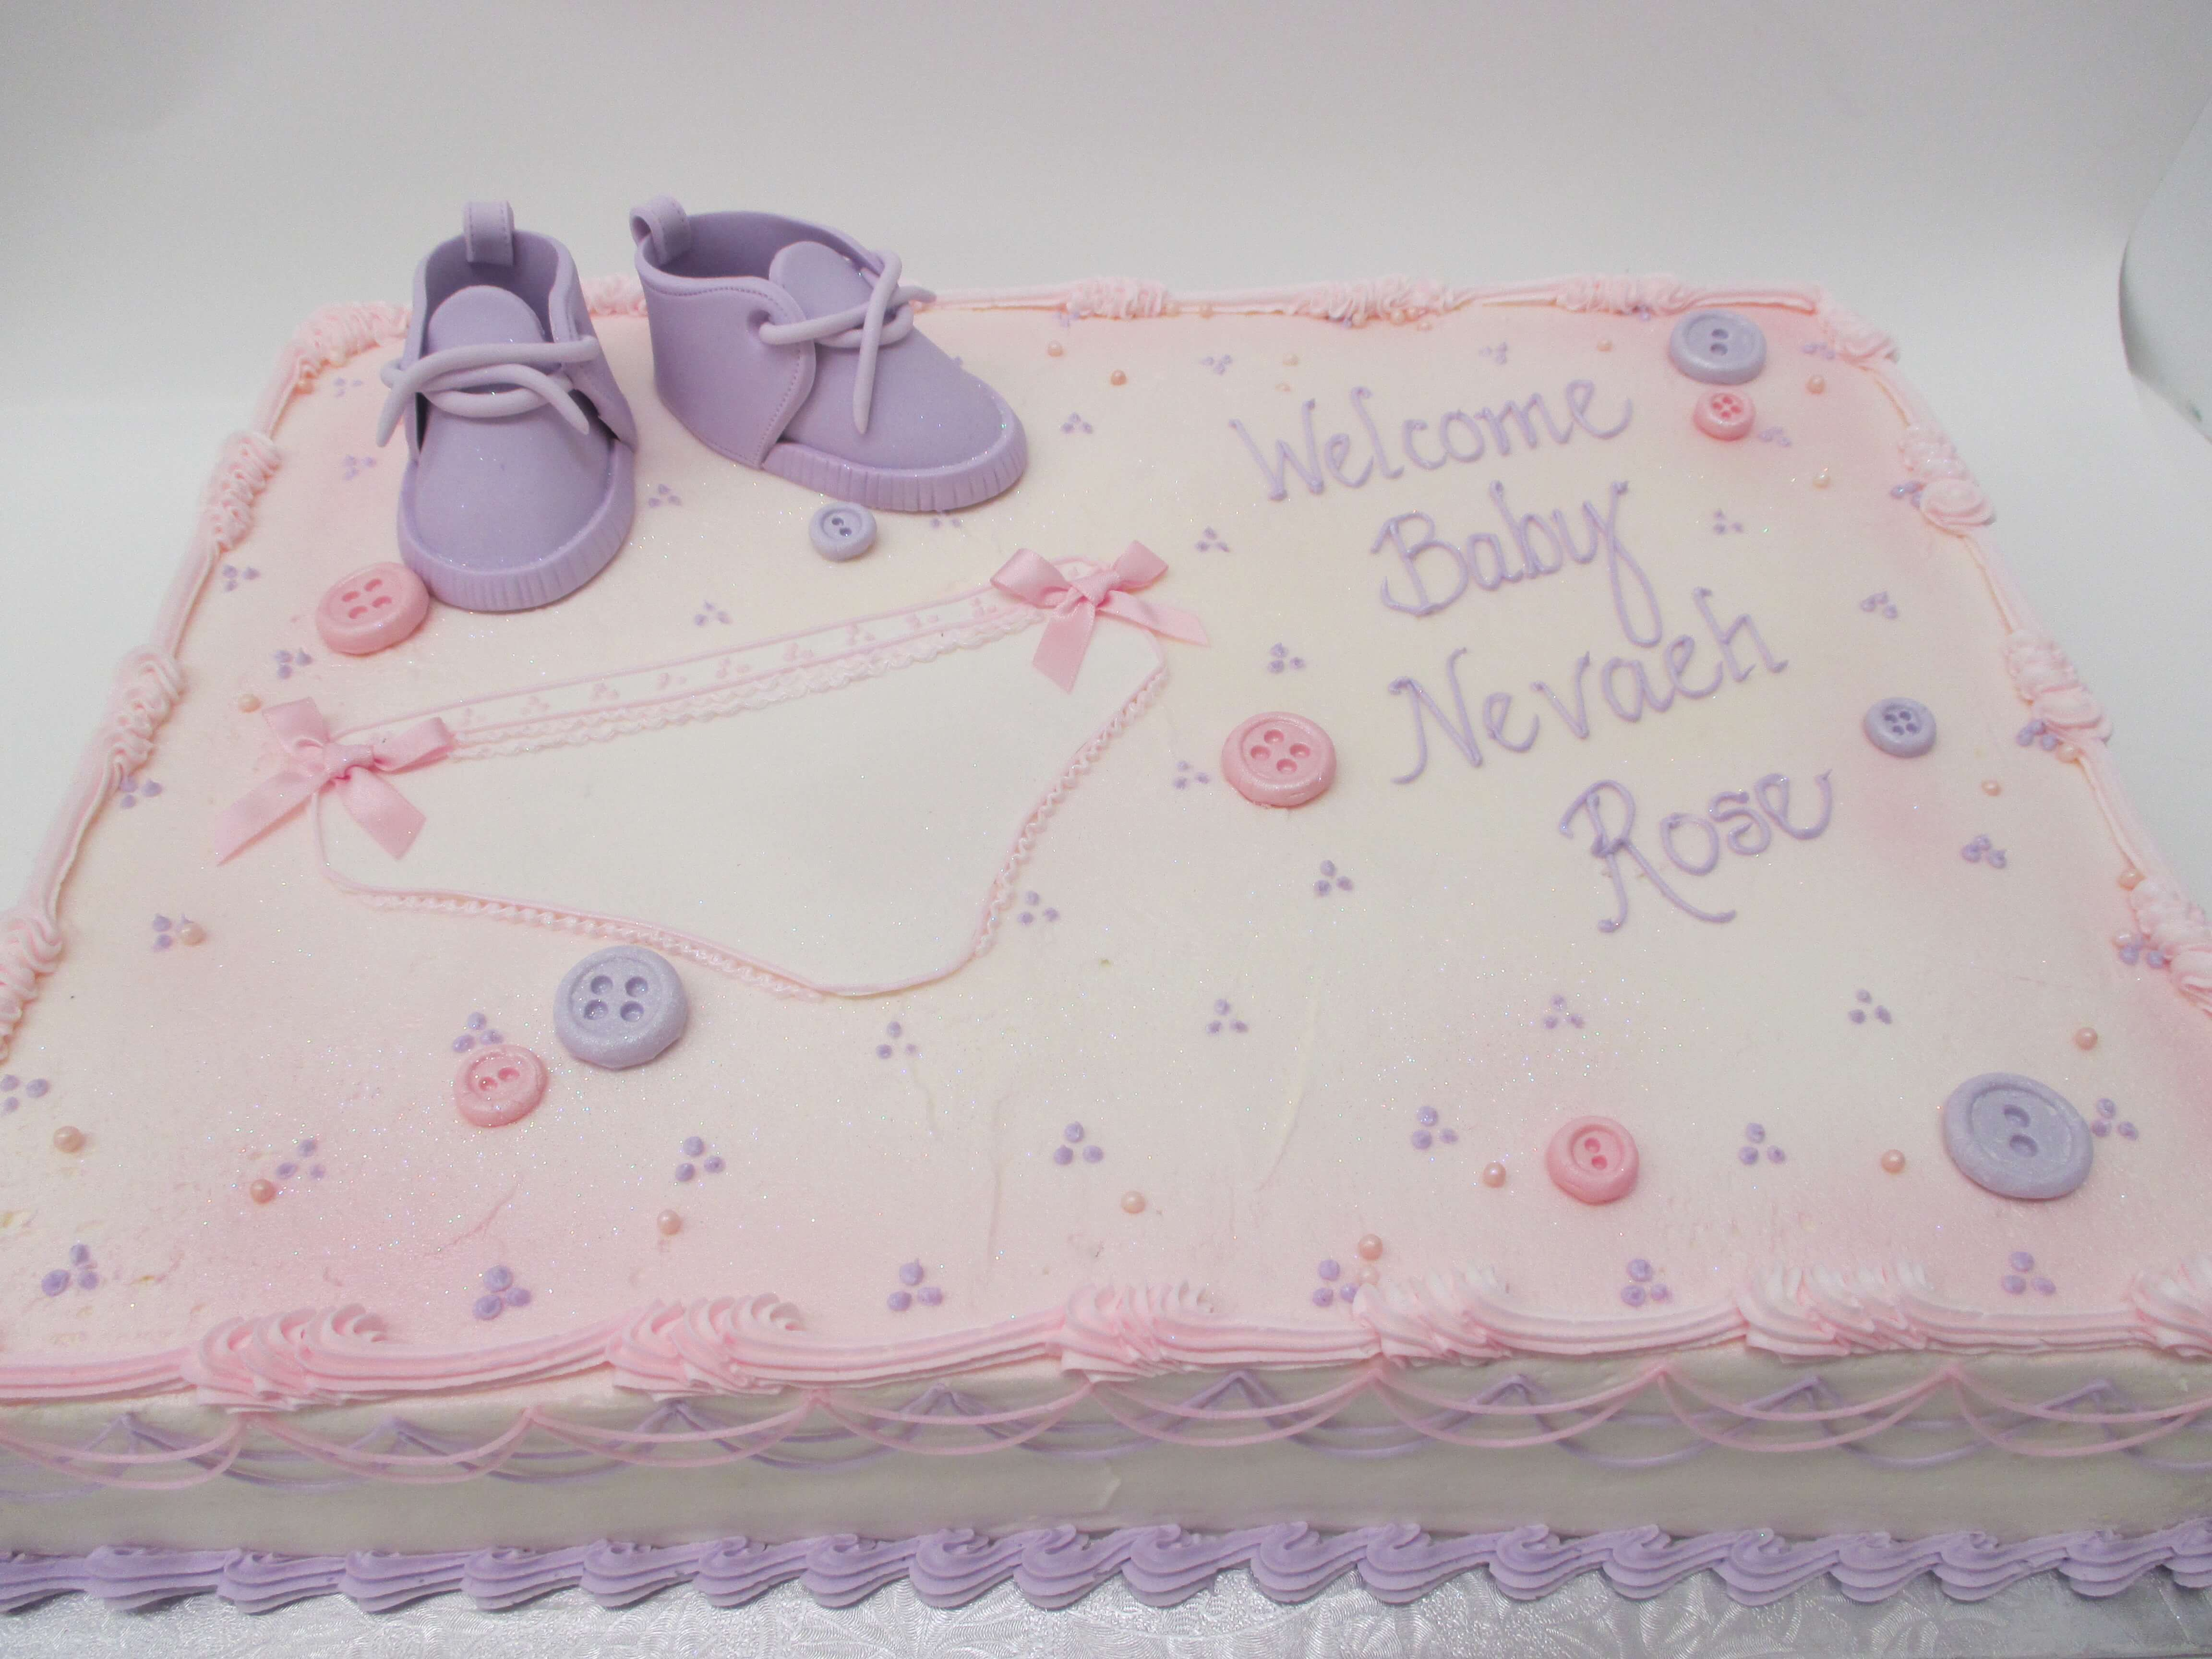 Baby Celebrations The Bake Shoppe Oregon Dairy